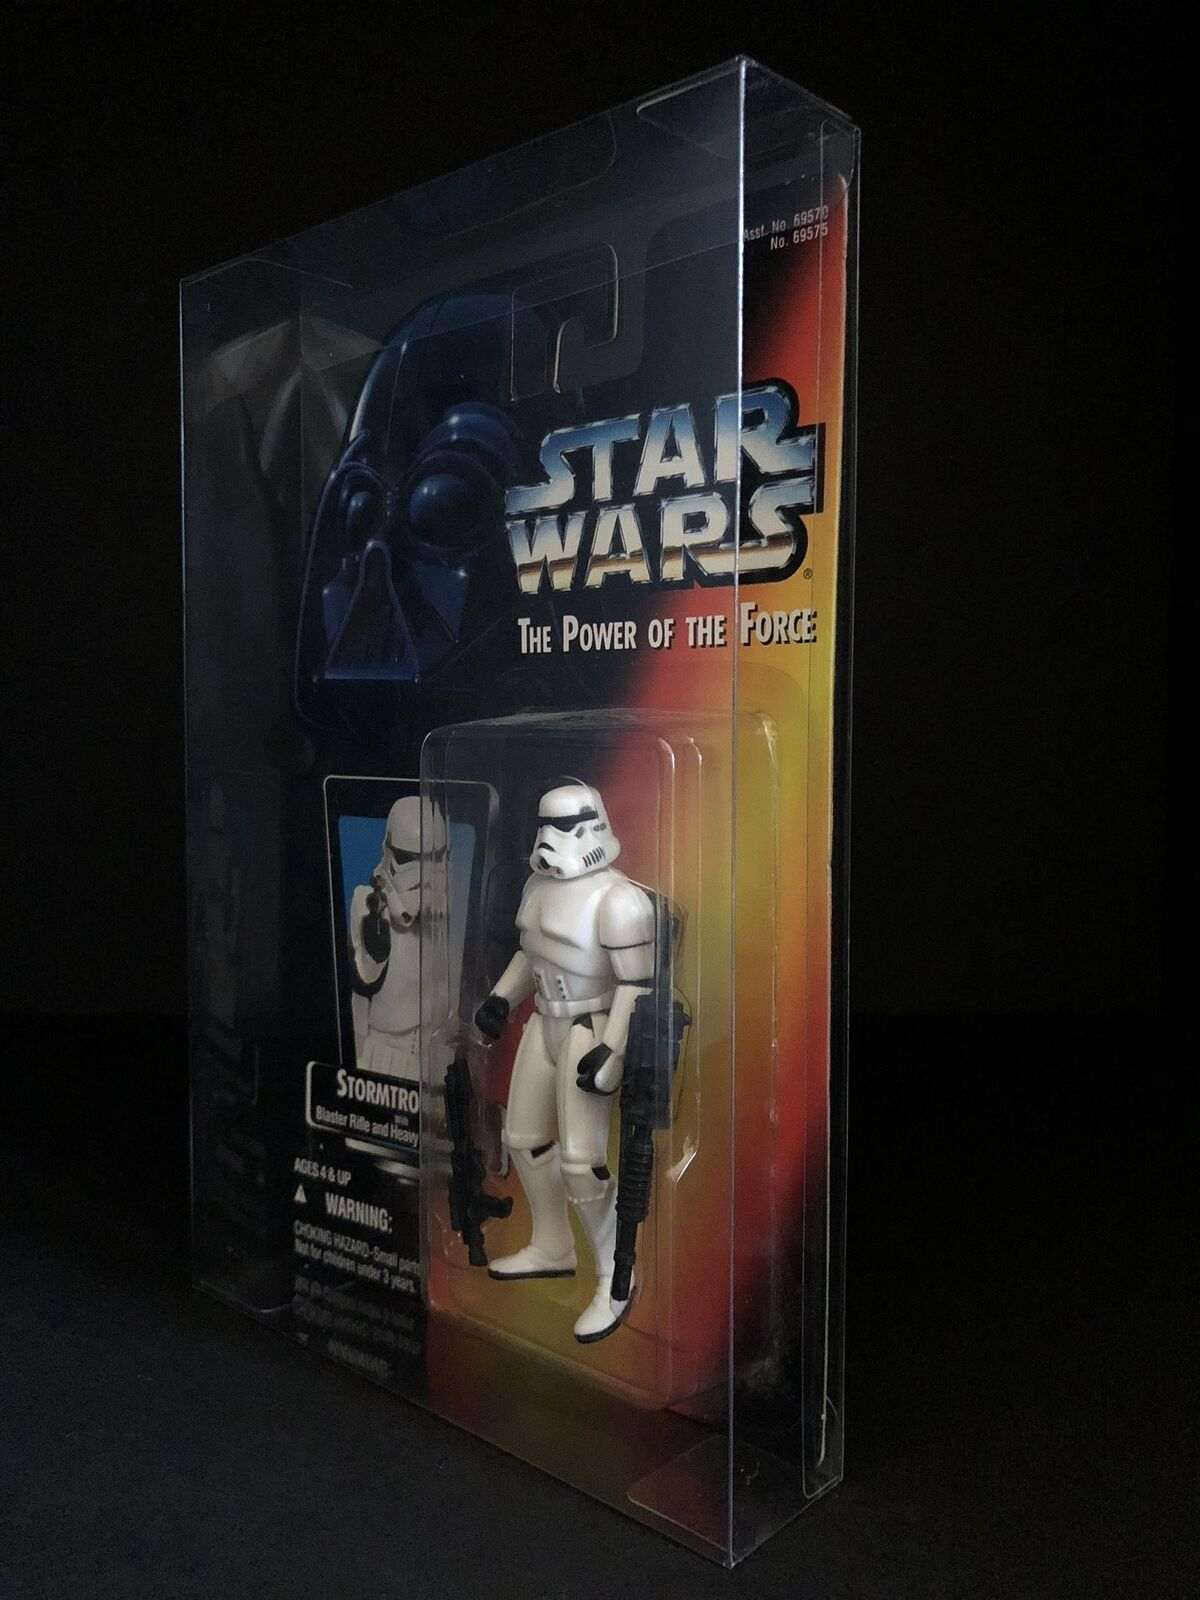 Star Wars The Power of the Force 3.75 Inch Protective Display Case